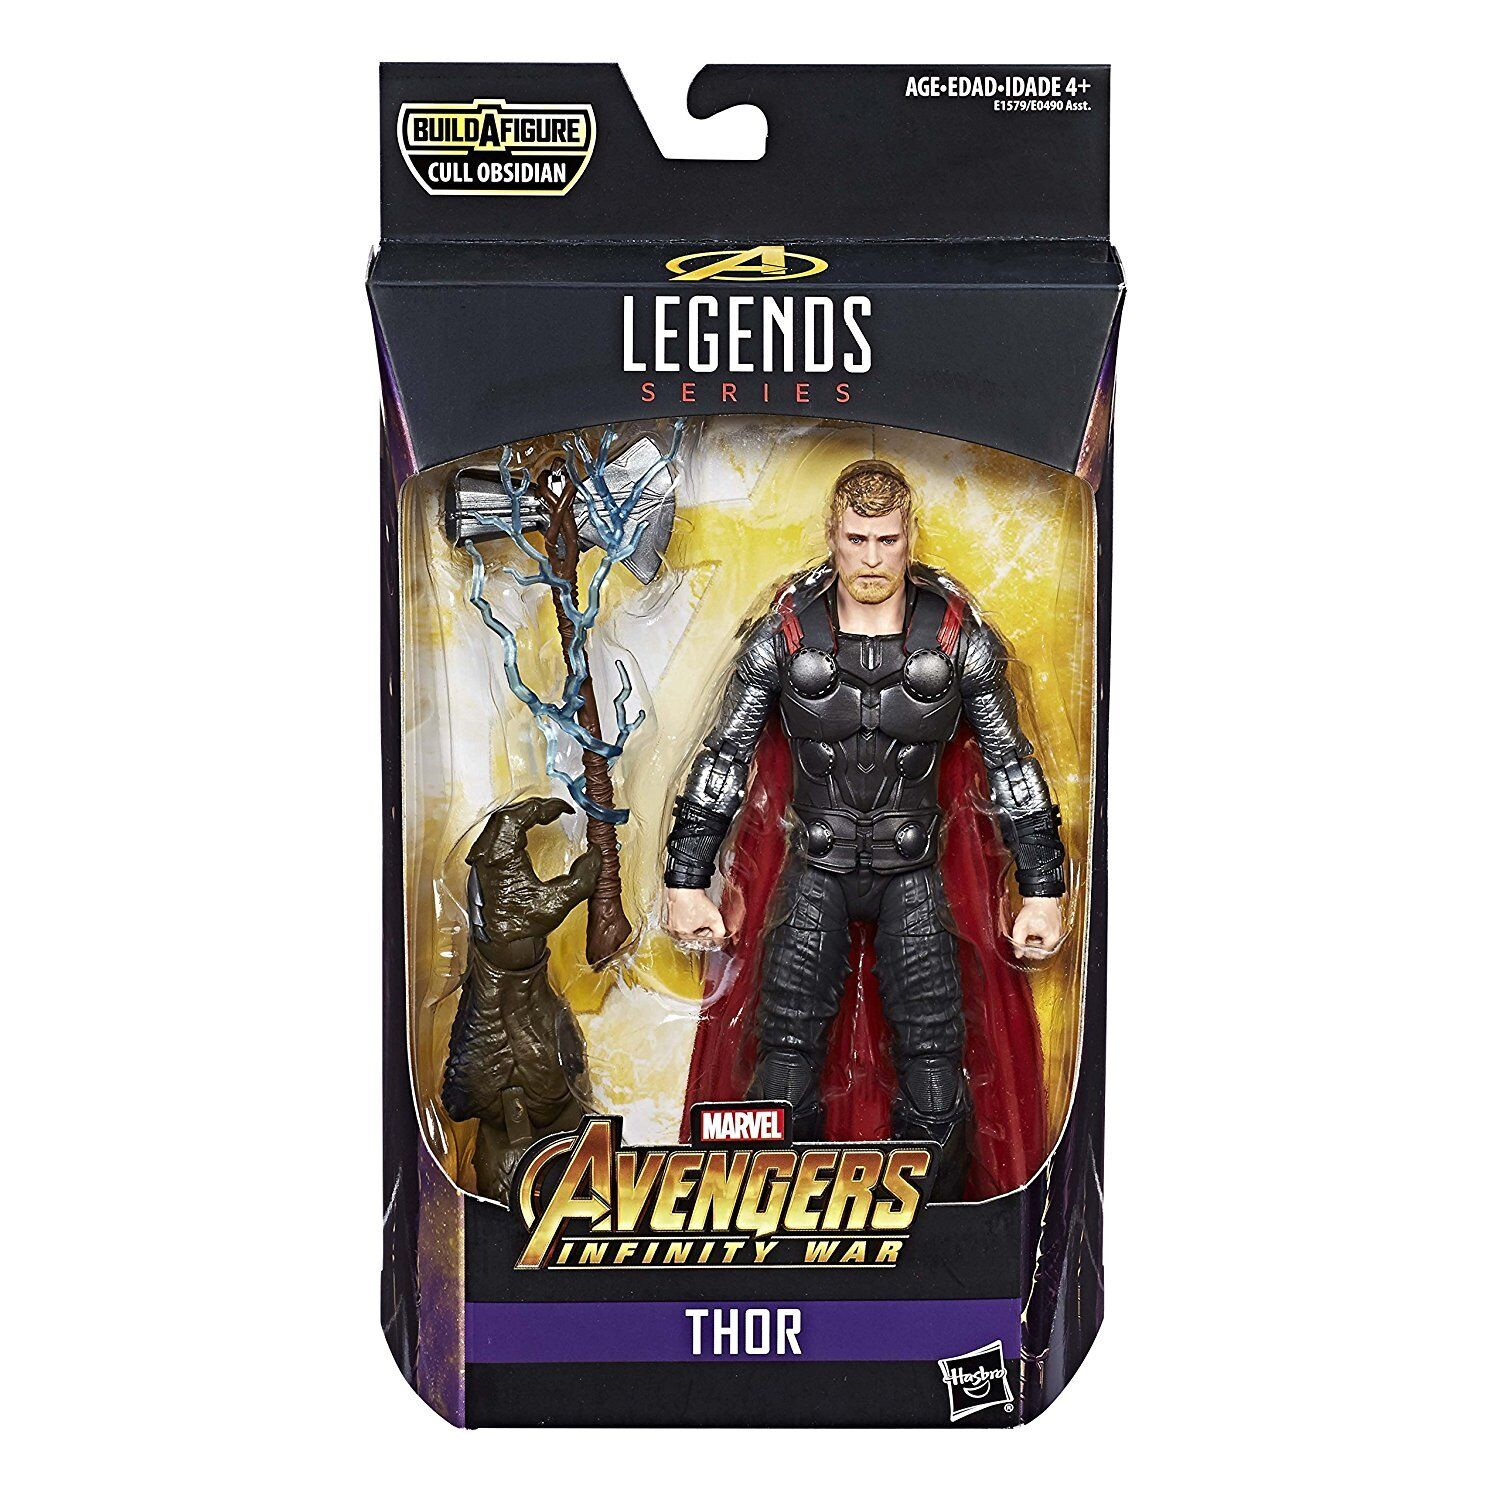 MARVEL LEGENDS AVENGERS INFINITY WAR THOR WITH STORMBREAKER BAF CULL OBSIDIAN